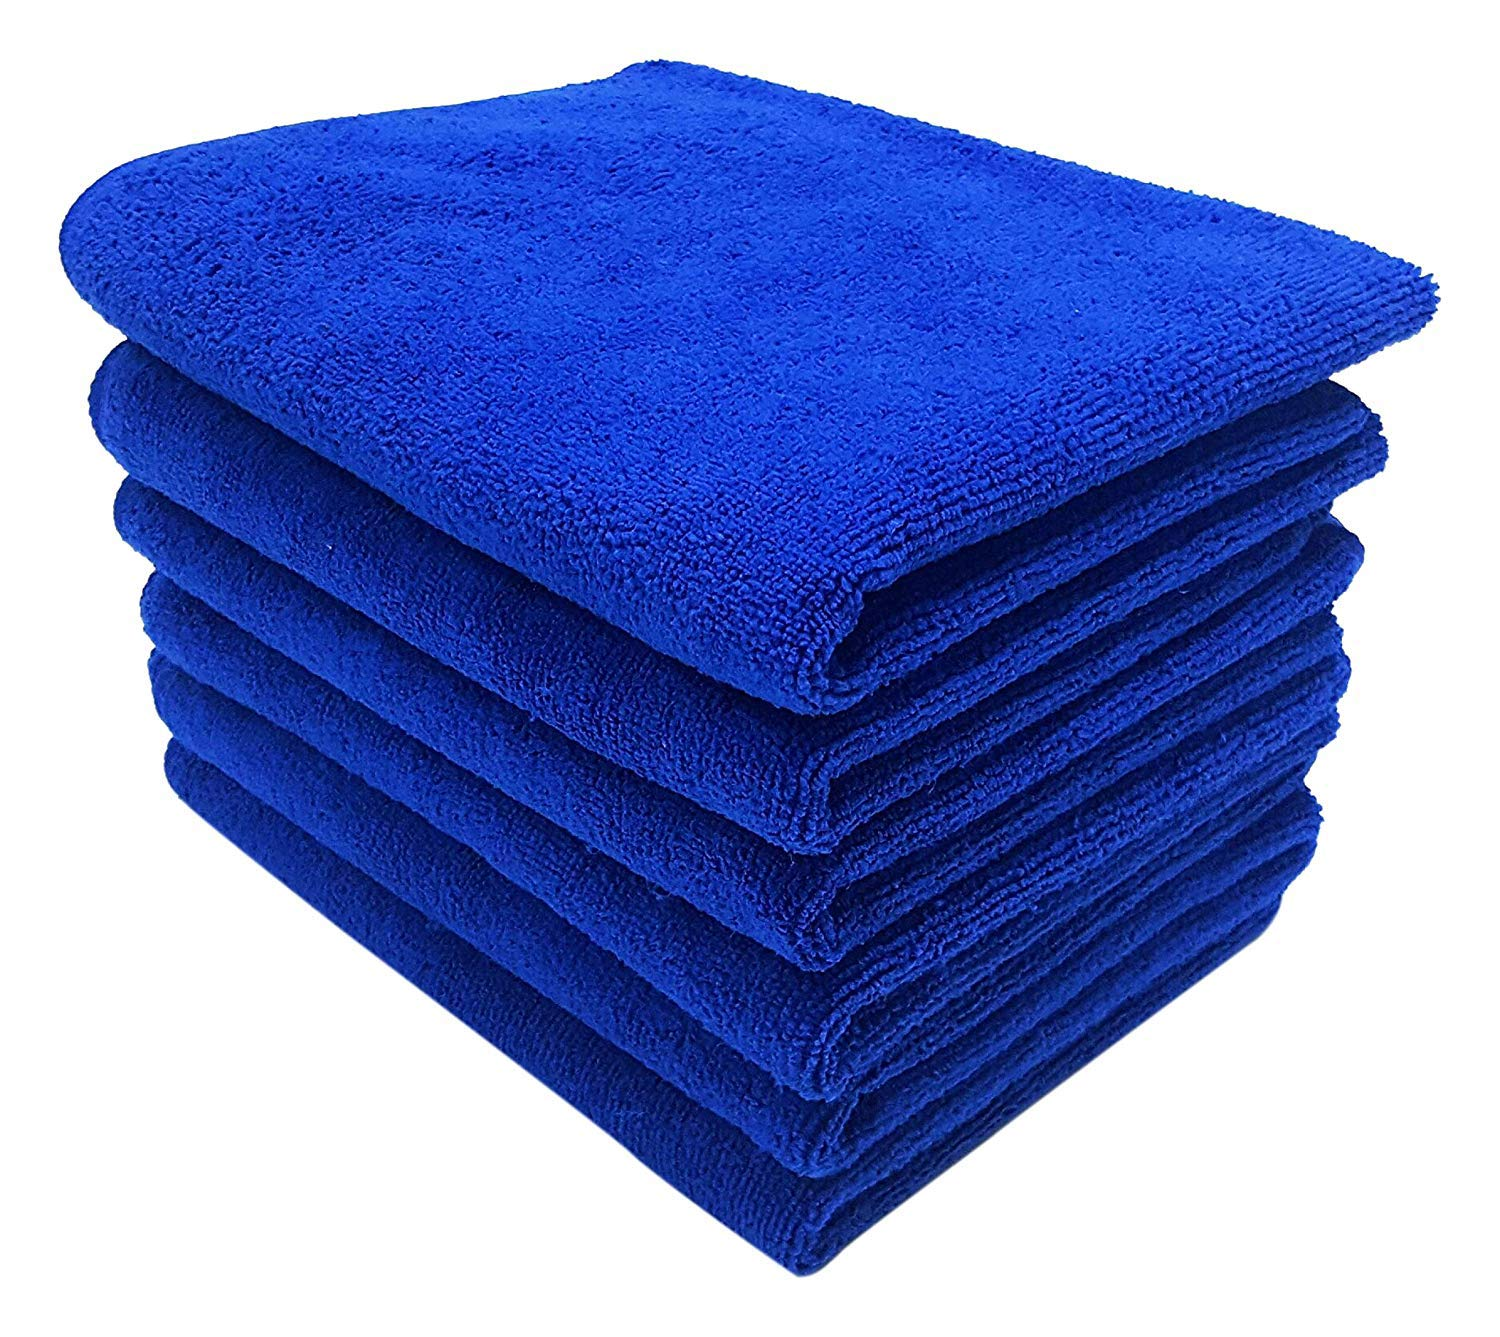 UTowels Professional Grade Premium Multi-Color Microfiber Towels 16'' x 16'' for All House Cleaning and Car Cleaning (144, Royal Blue) by UTowels (Image #1)